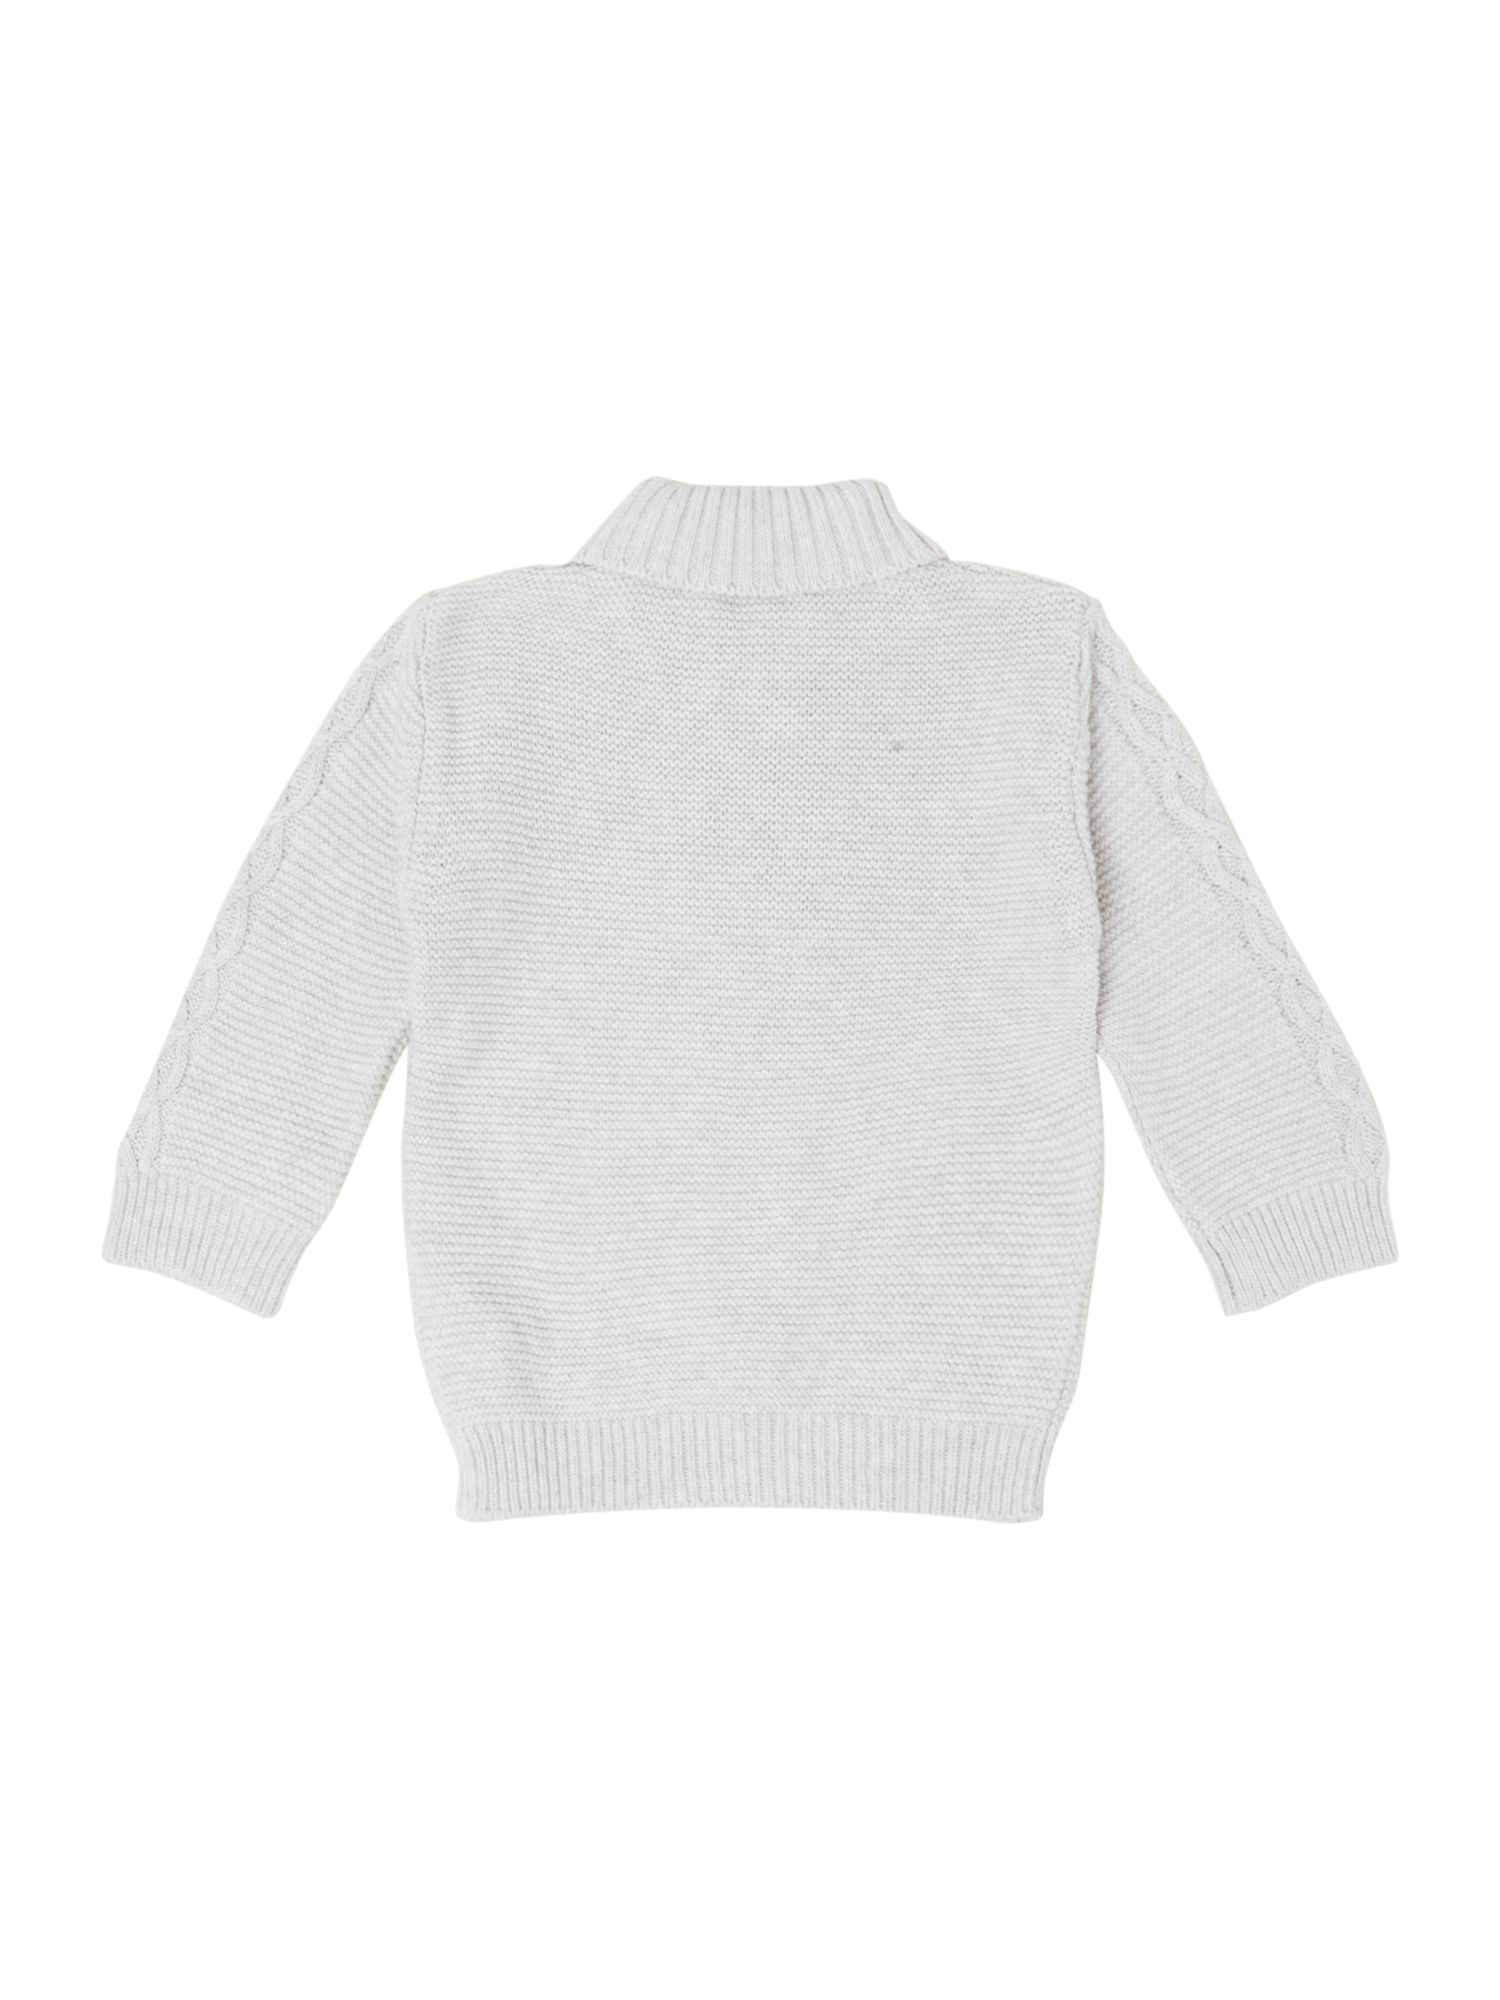 Boy`s knitted long sleeve sweater